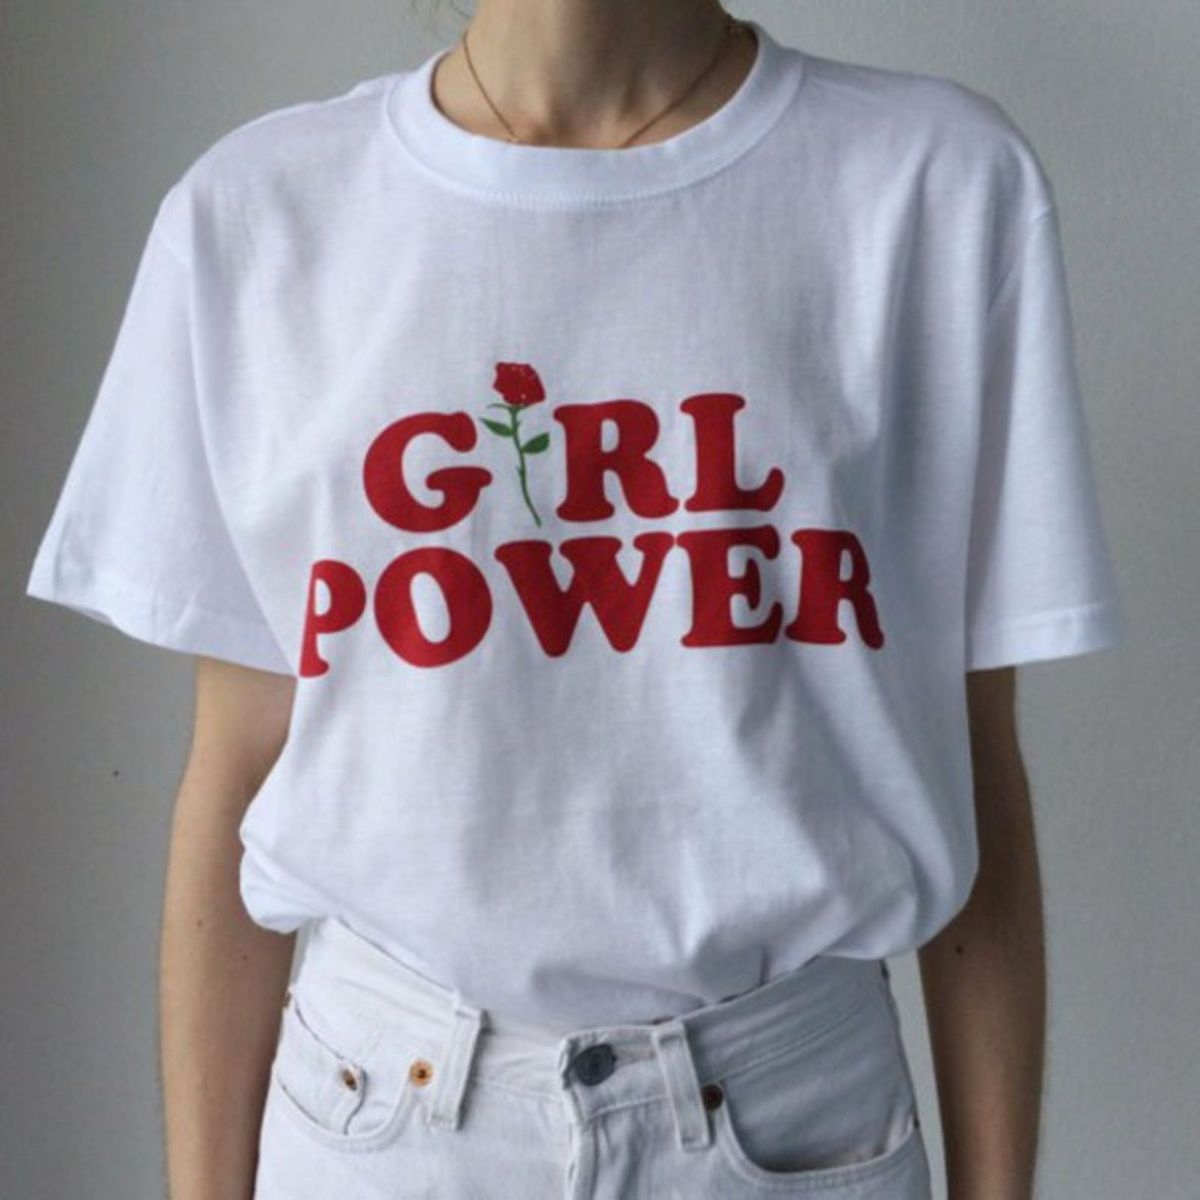 girl power - camisetas affection store